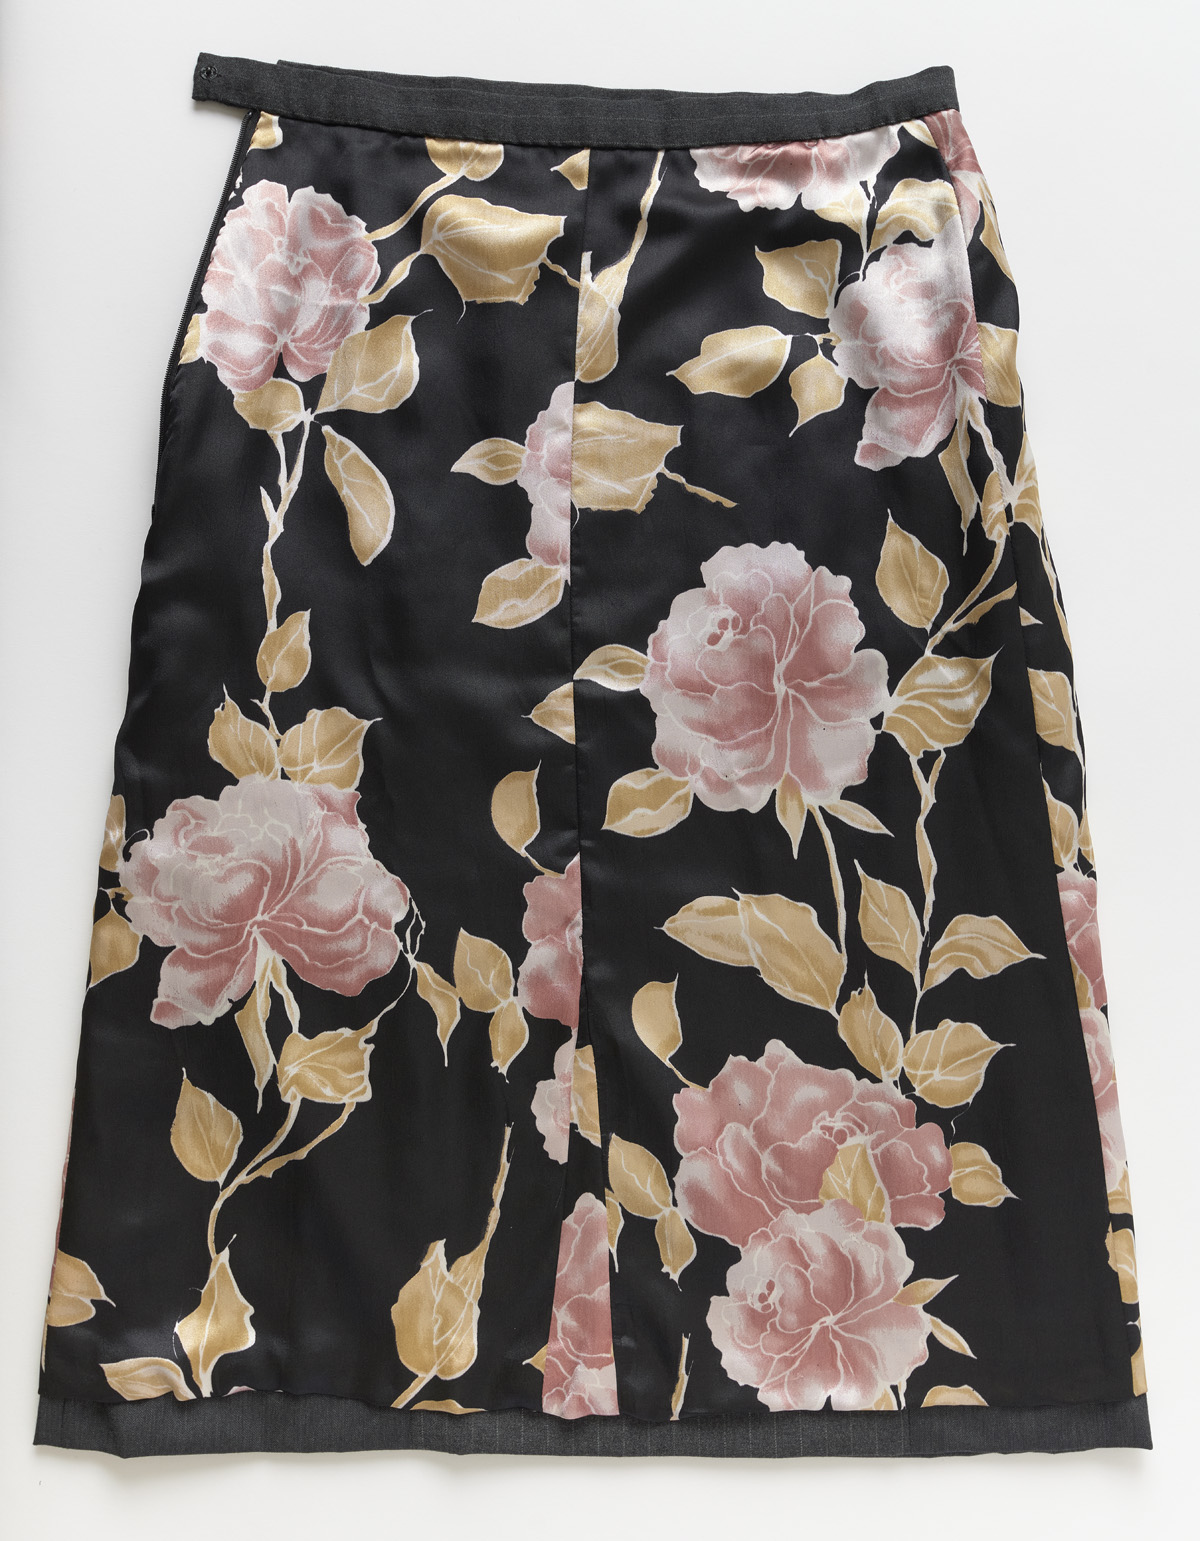 Women's suit skirt turned inside out to show floral charmeuse lining